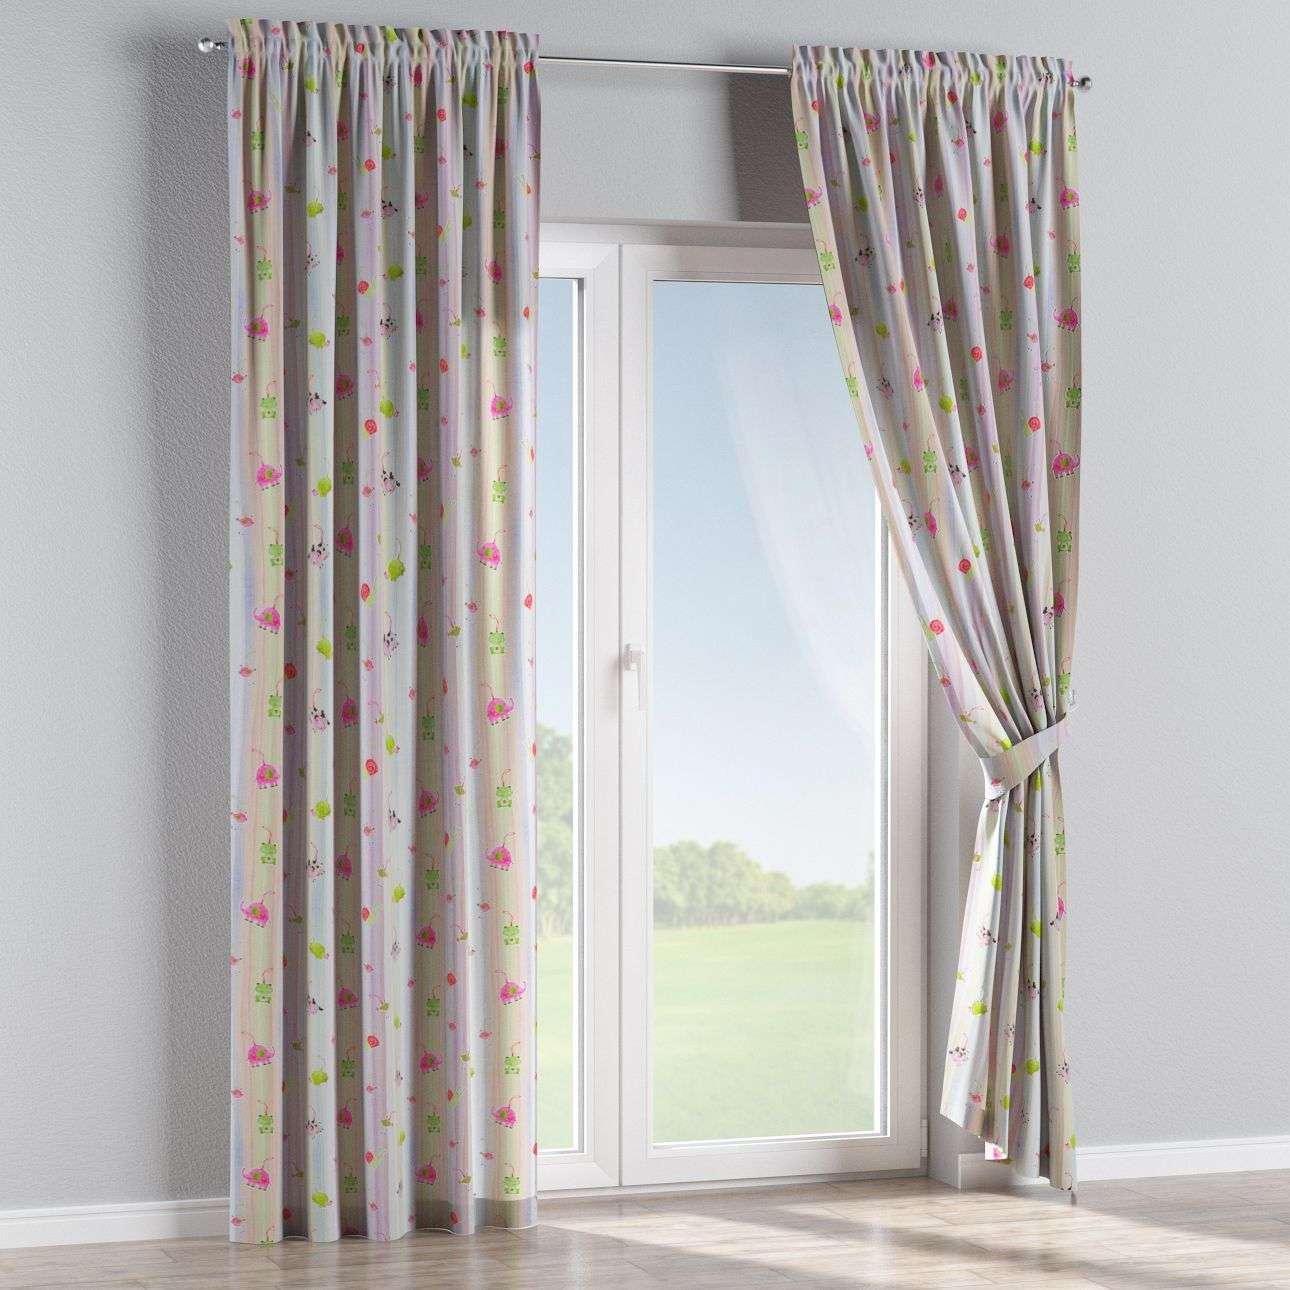 Slot and frill curtains in collection Apanona, fabric: 151-05